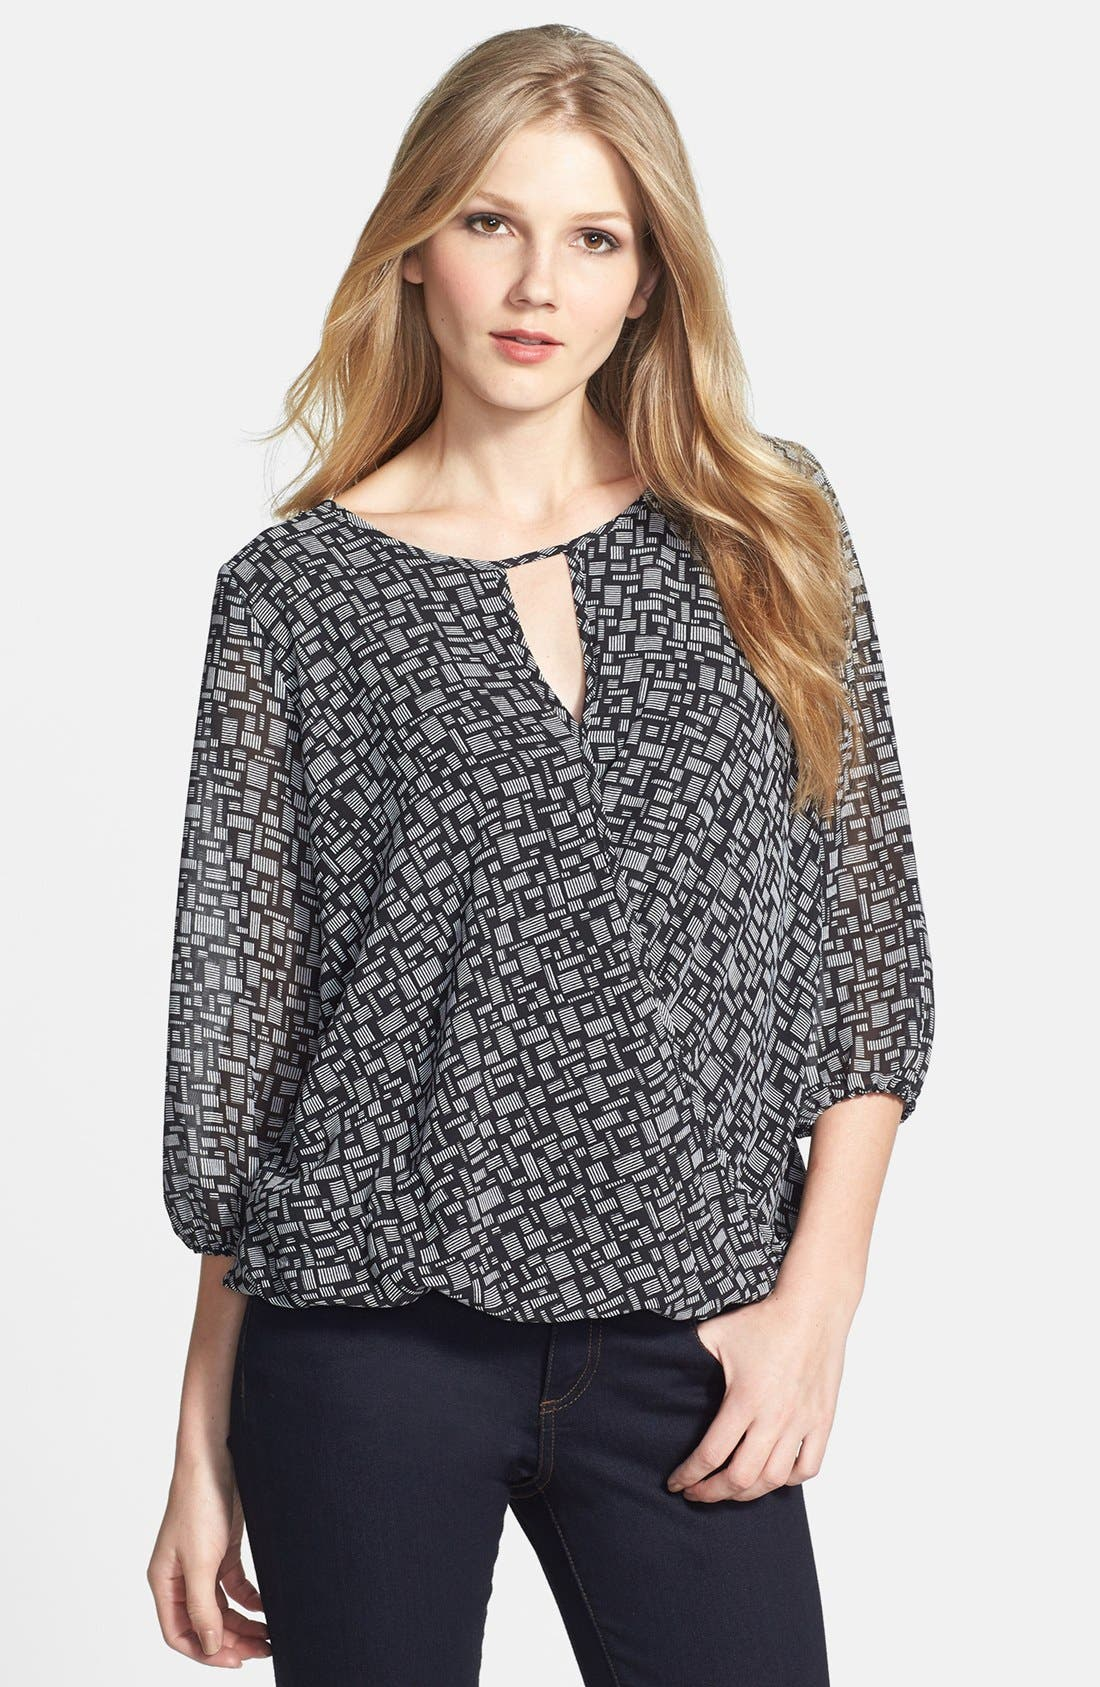 Alternate Image 1 Selected - Vince Camuto 'Blurred Touches' Faux Wrap Blouse